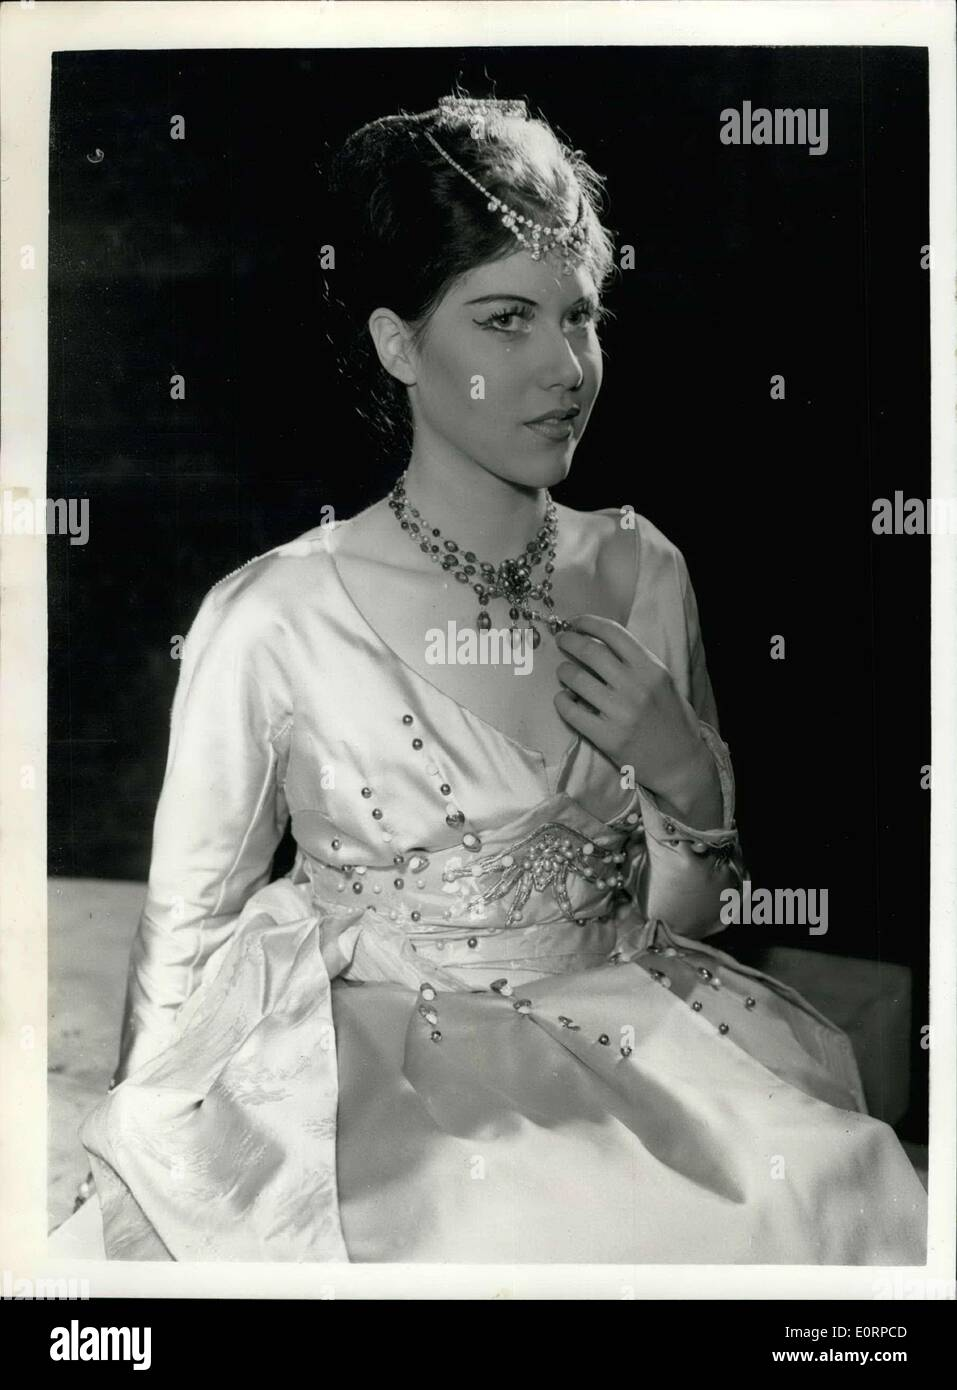 Feb. 23, 1960 - Rehearsals for the Mermaid Theater's version of ''Henry V'': Rehearsals were held today for the Mermaid Theater's version of Shakespeare's ''Henry V'' - in battledress, which open at 6 1/2 week run on Thursday. Photo Shows Suzanne Fuller, at Katherine - at today's rehearsal. - Stock Image